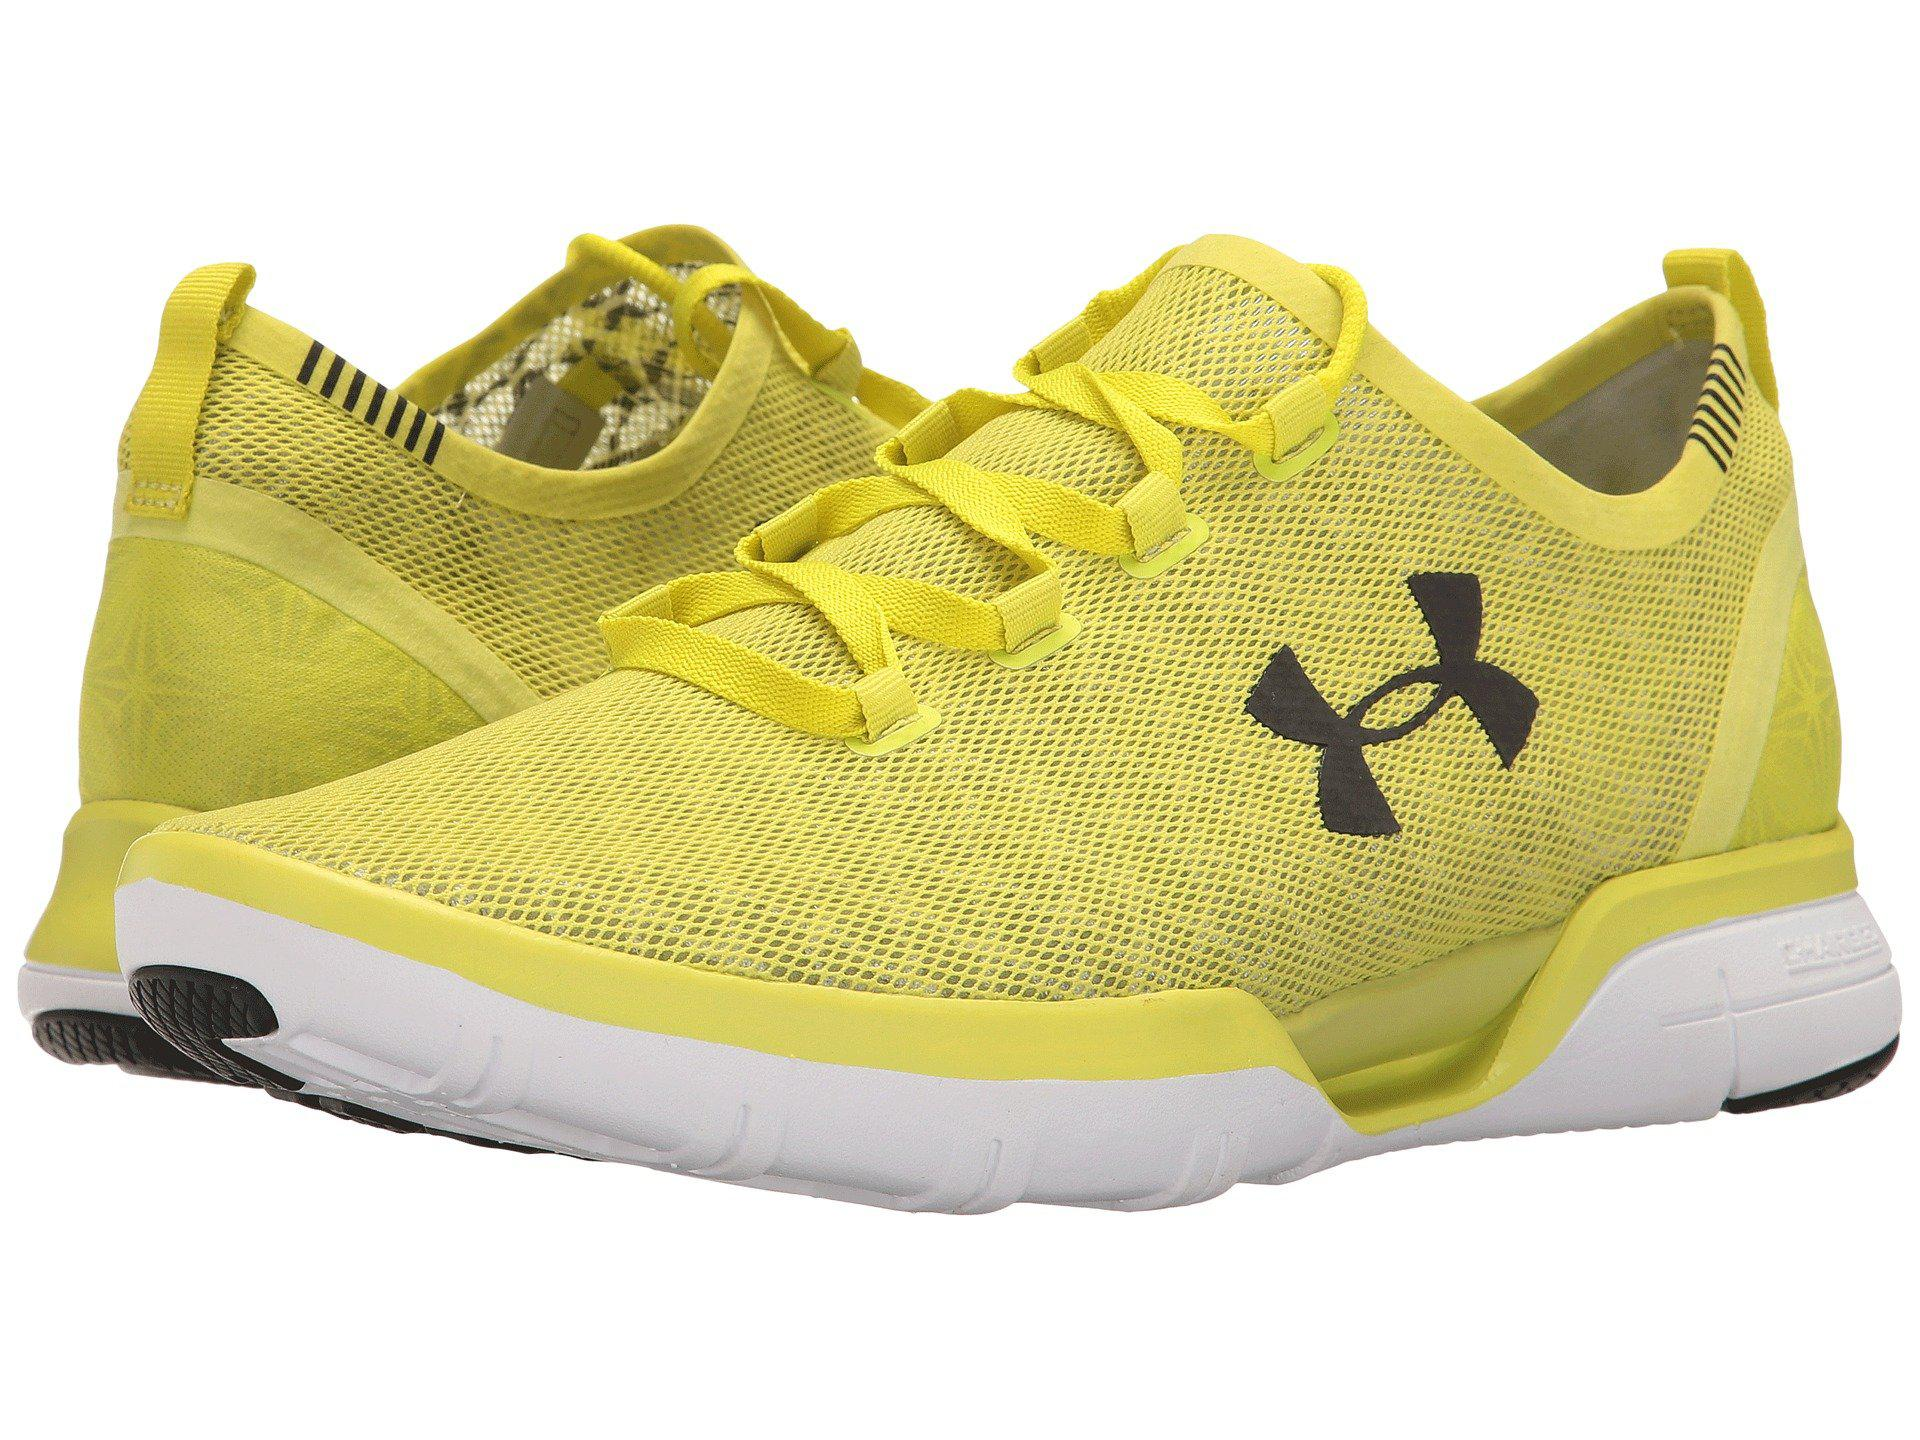 Under Armour Synthetic Charged